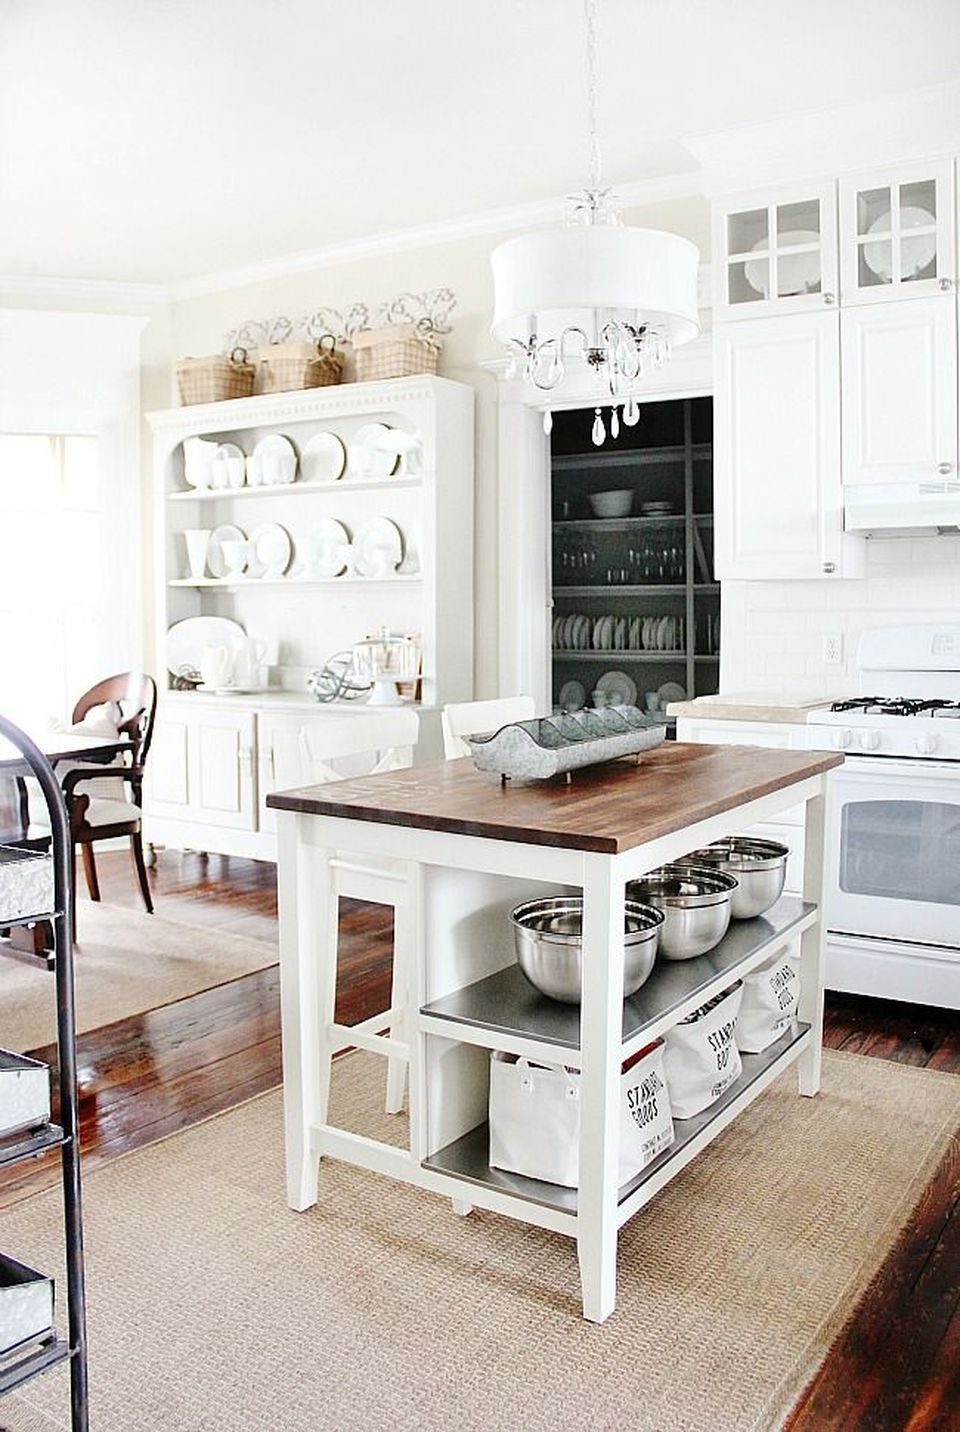 Bar height kitchen island   Inspirations Vintage Farmhouse Style Kitchen Island  Farmhouse